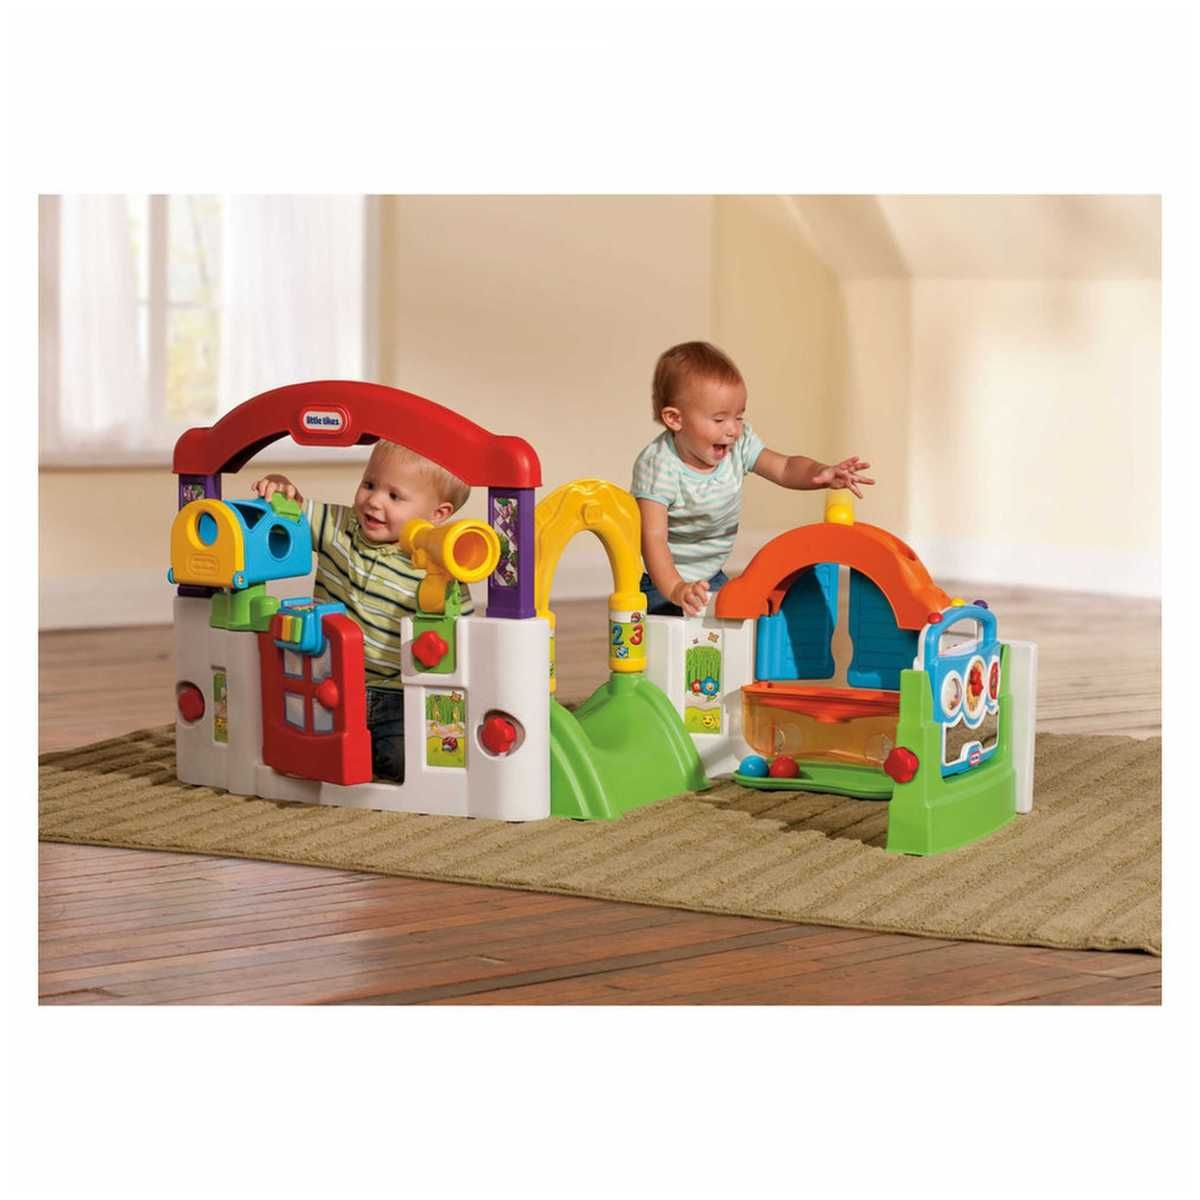 little tikes table and chairs set toys r us black oversized chair tykes garden - inspiration